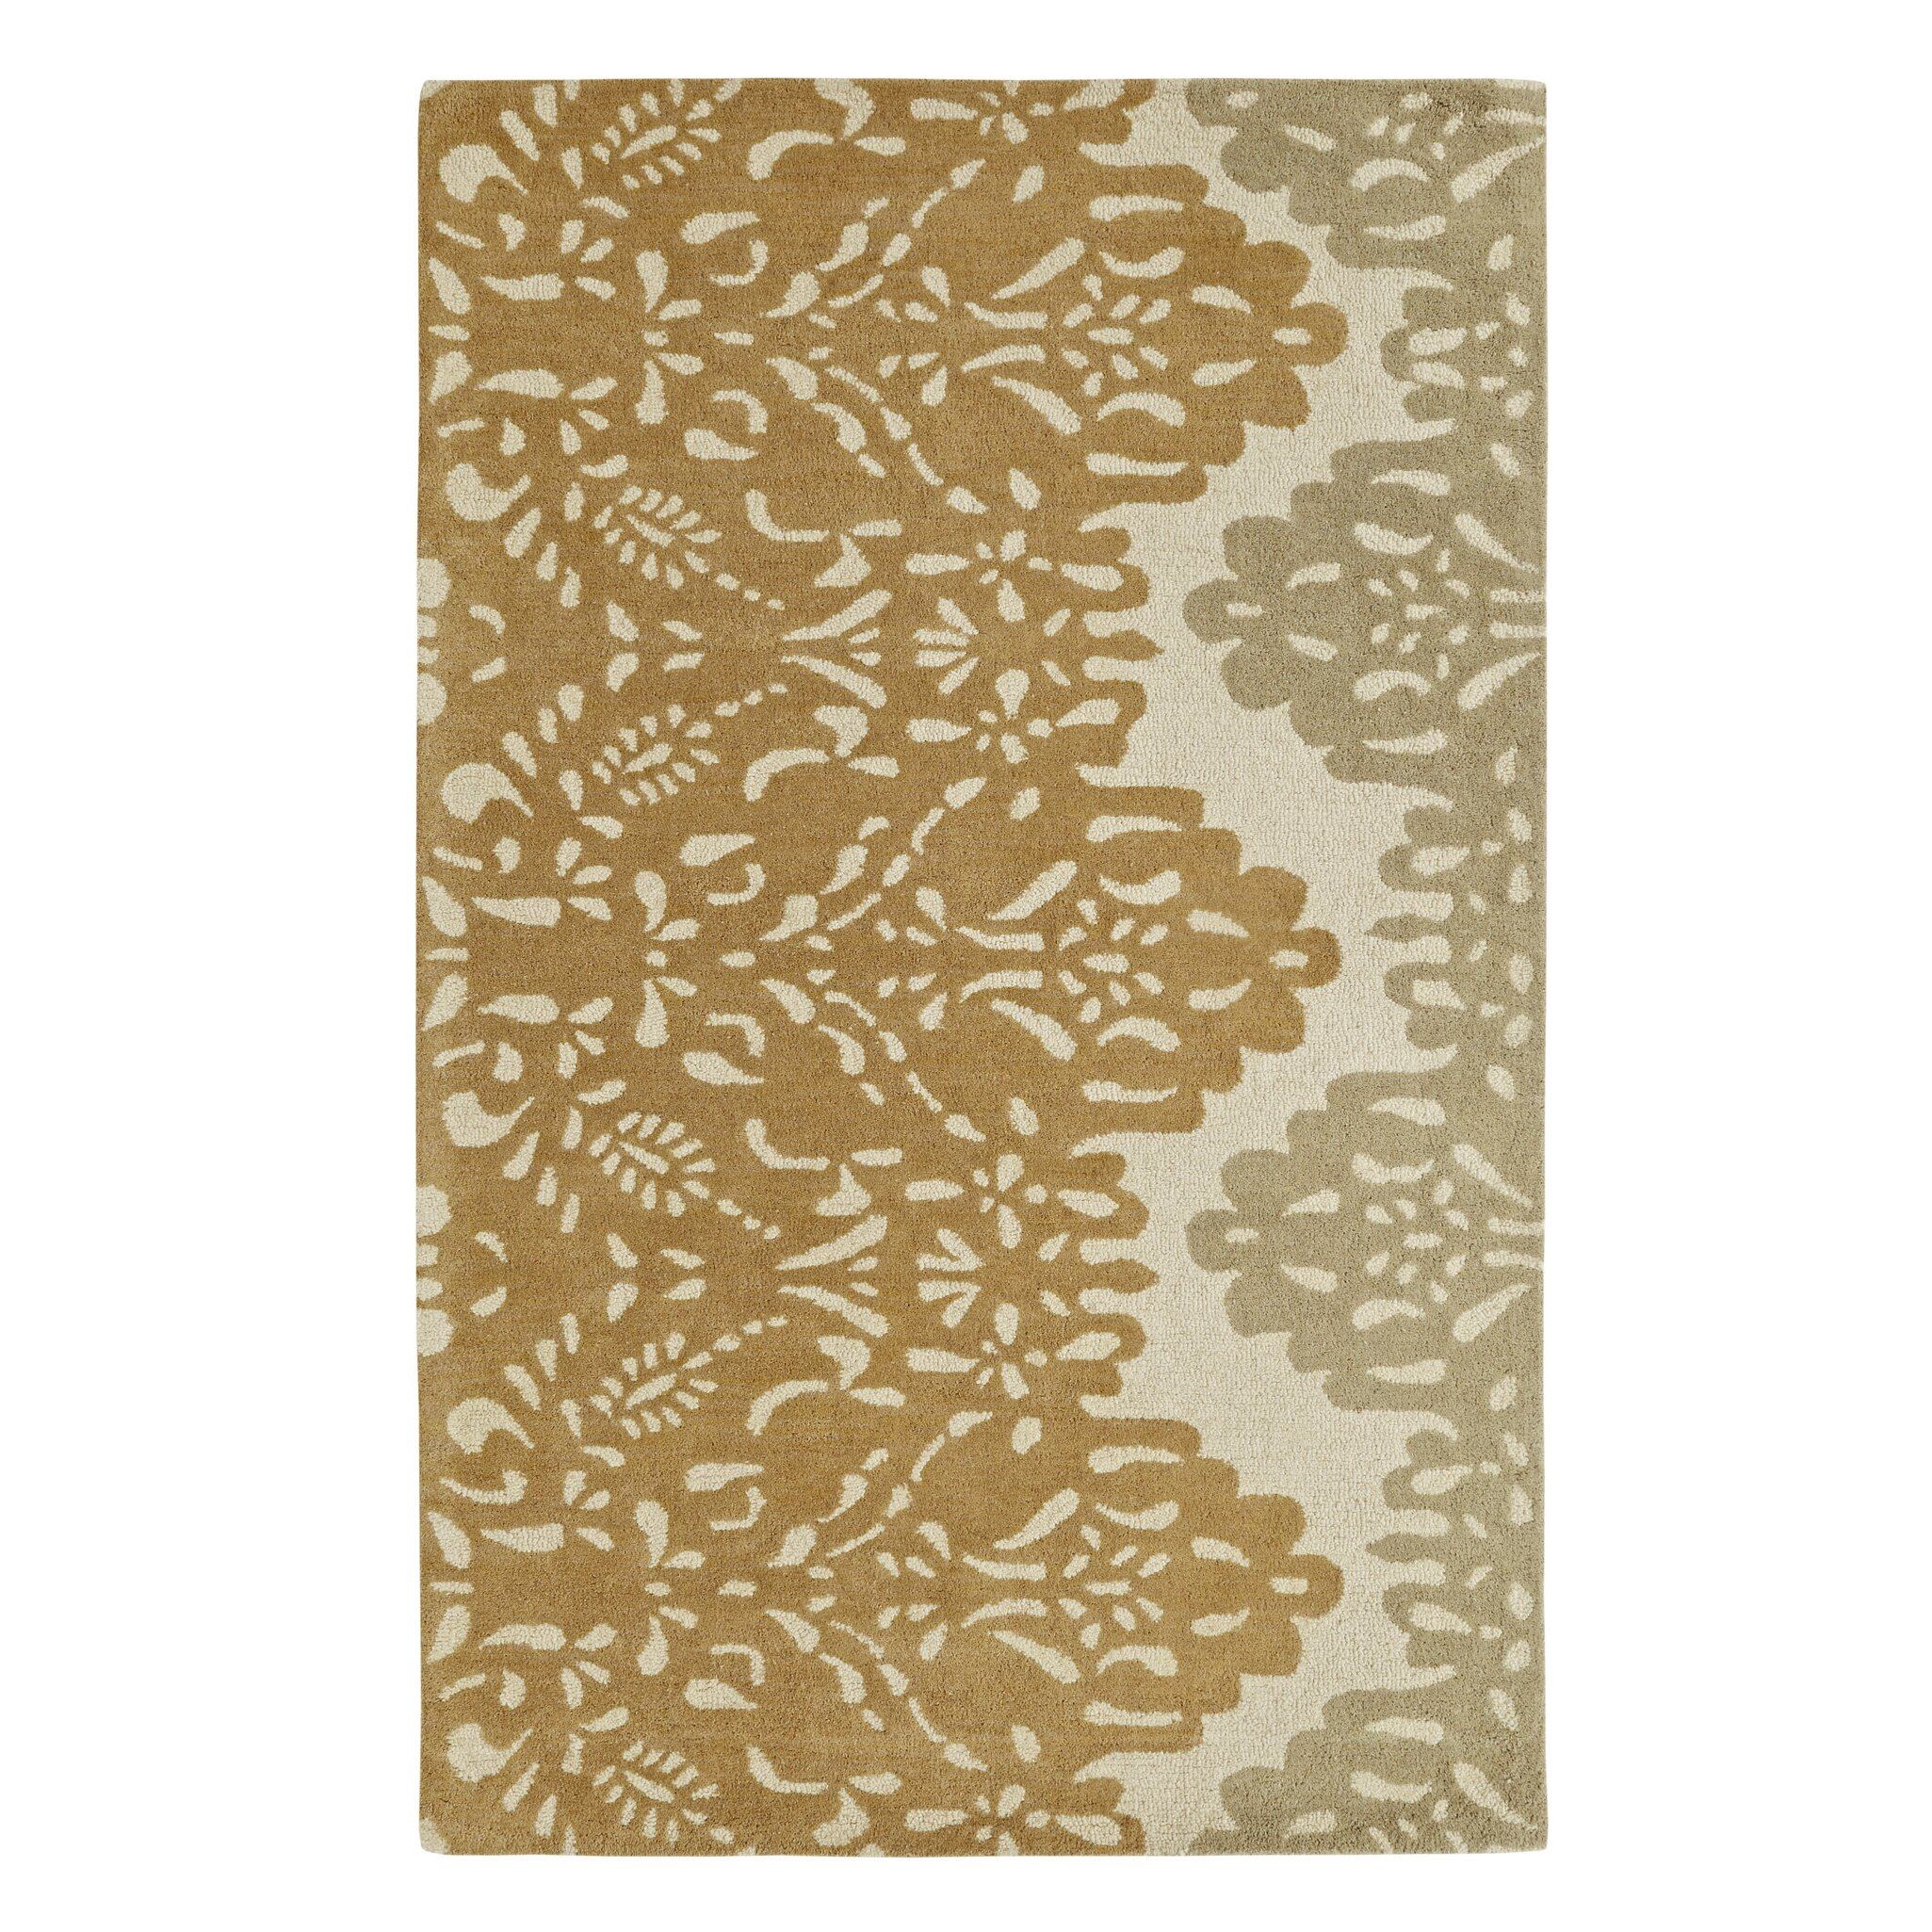 Book Of Gold Bath Rugs In Singapore By Sophia Eyagci Com